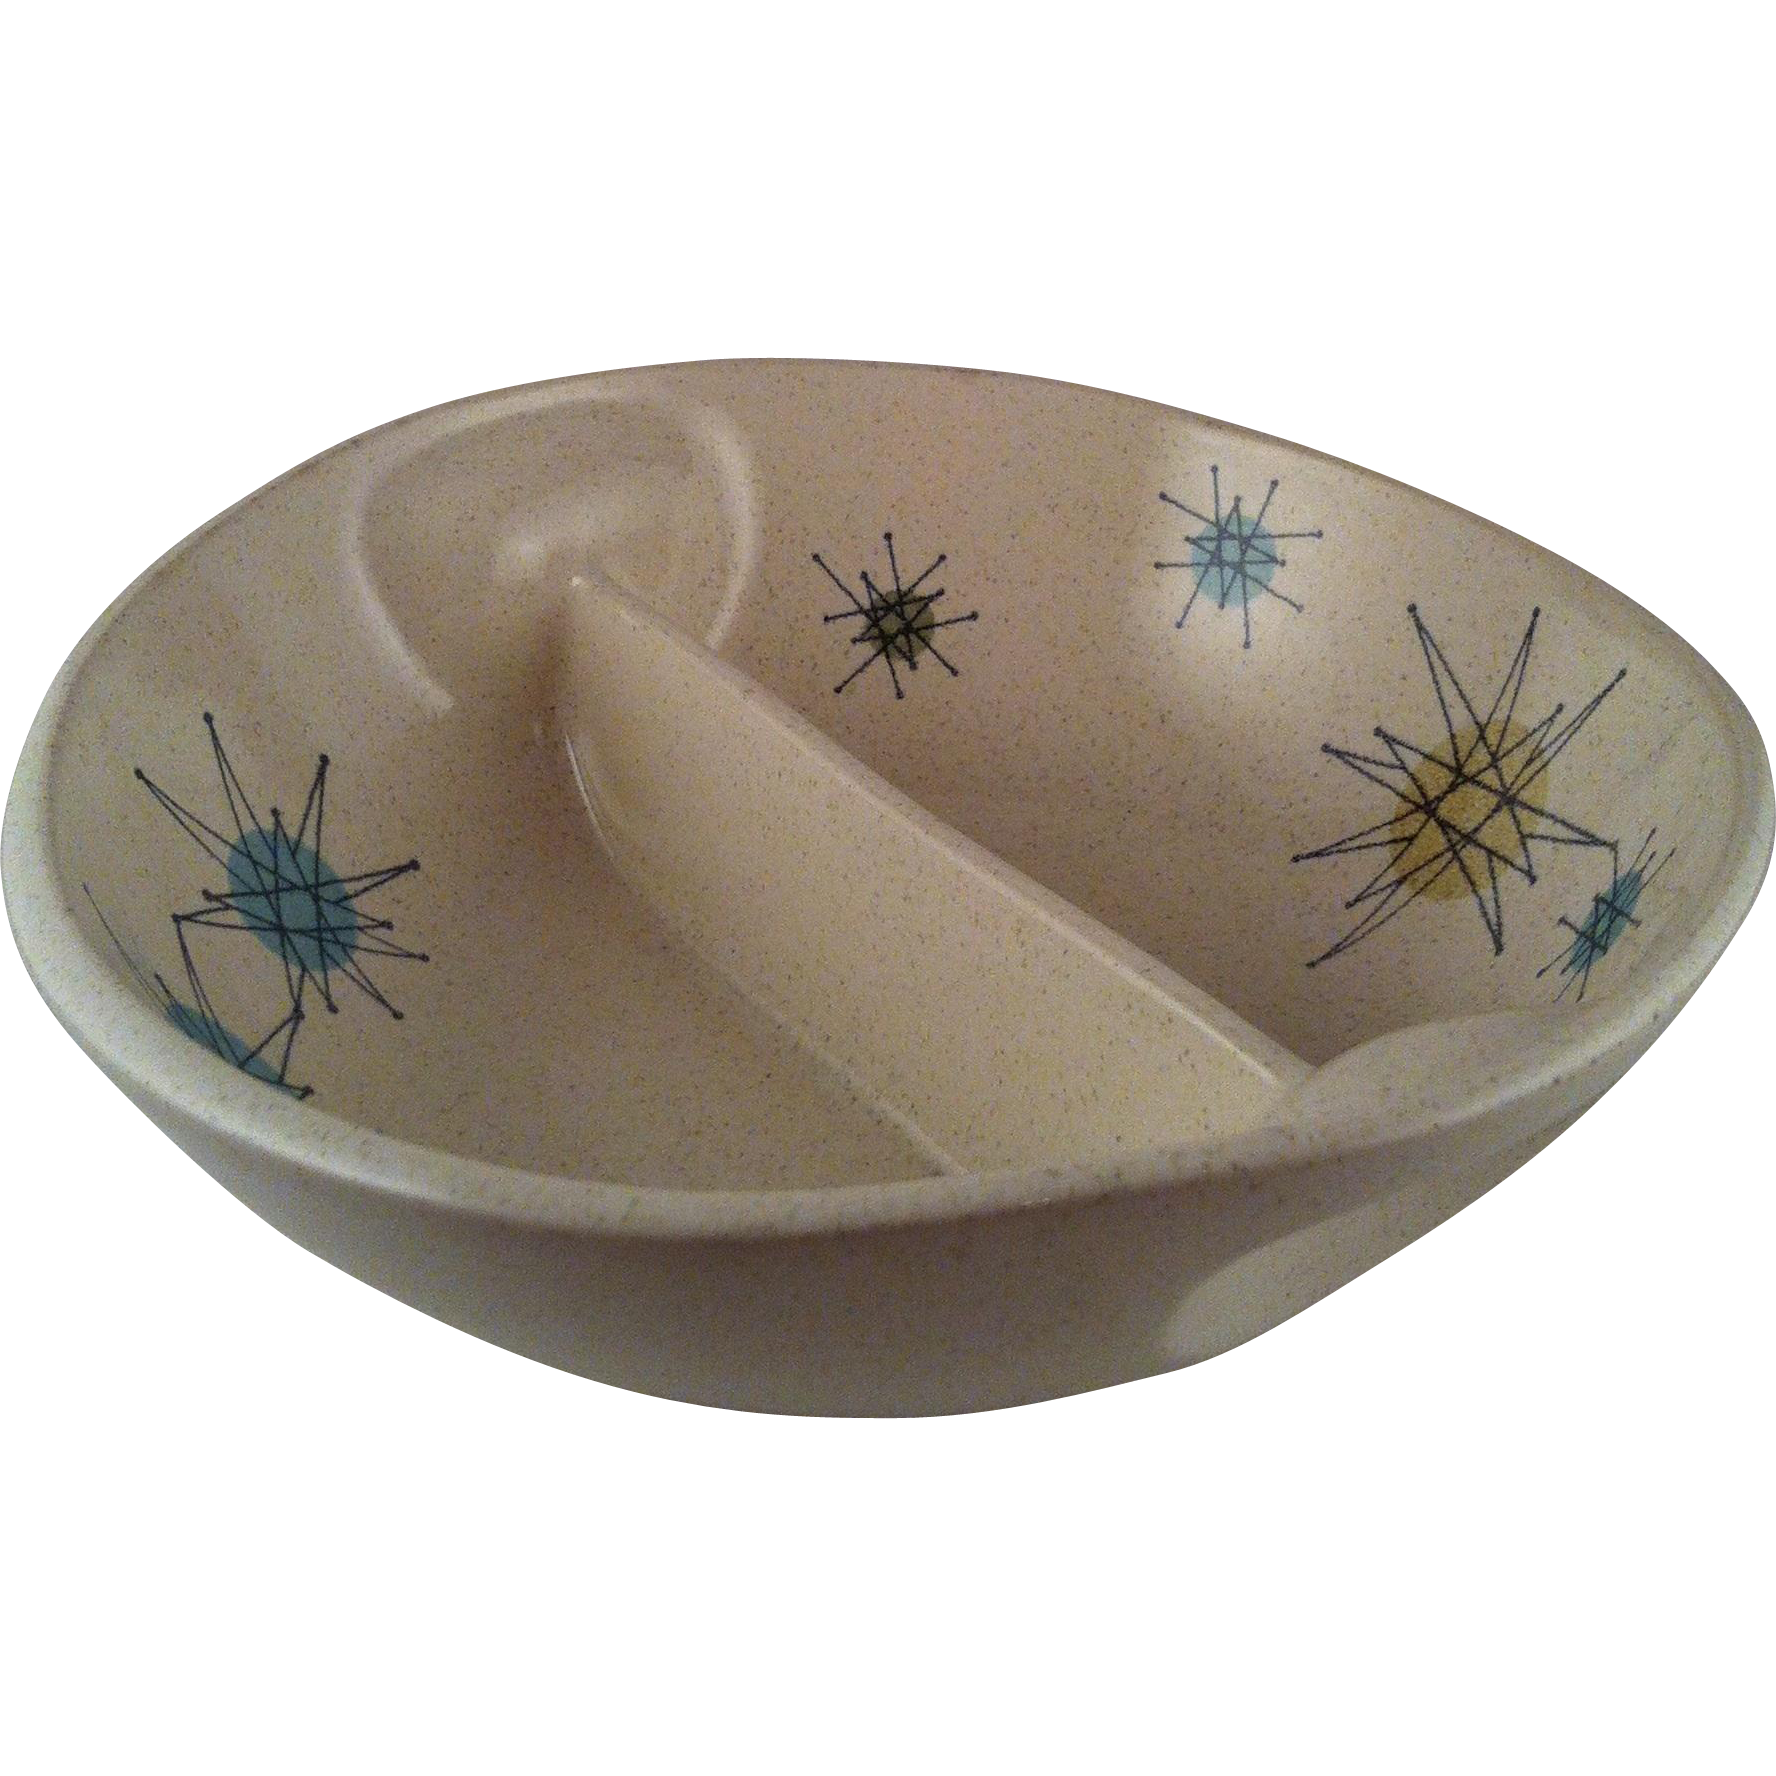 Starburst Divided Vegetable Bowl ~ Franciscan